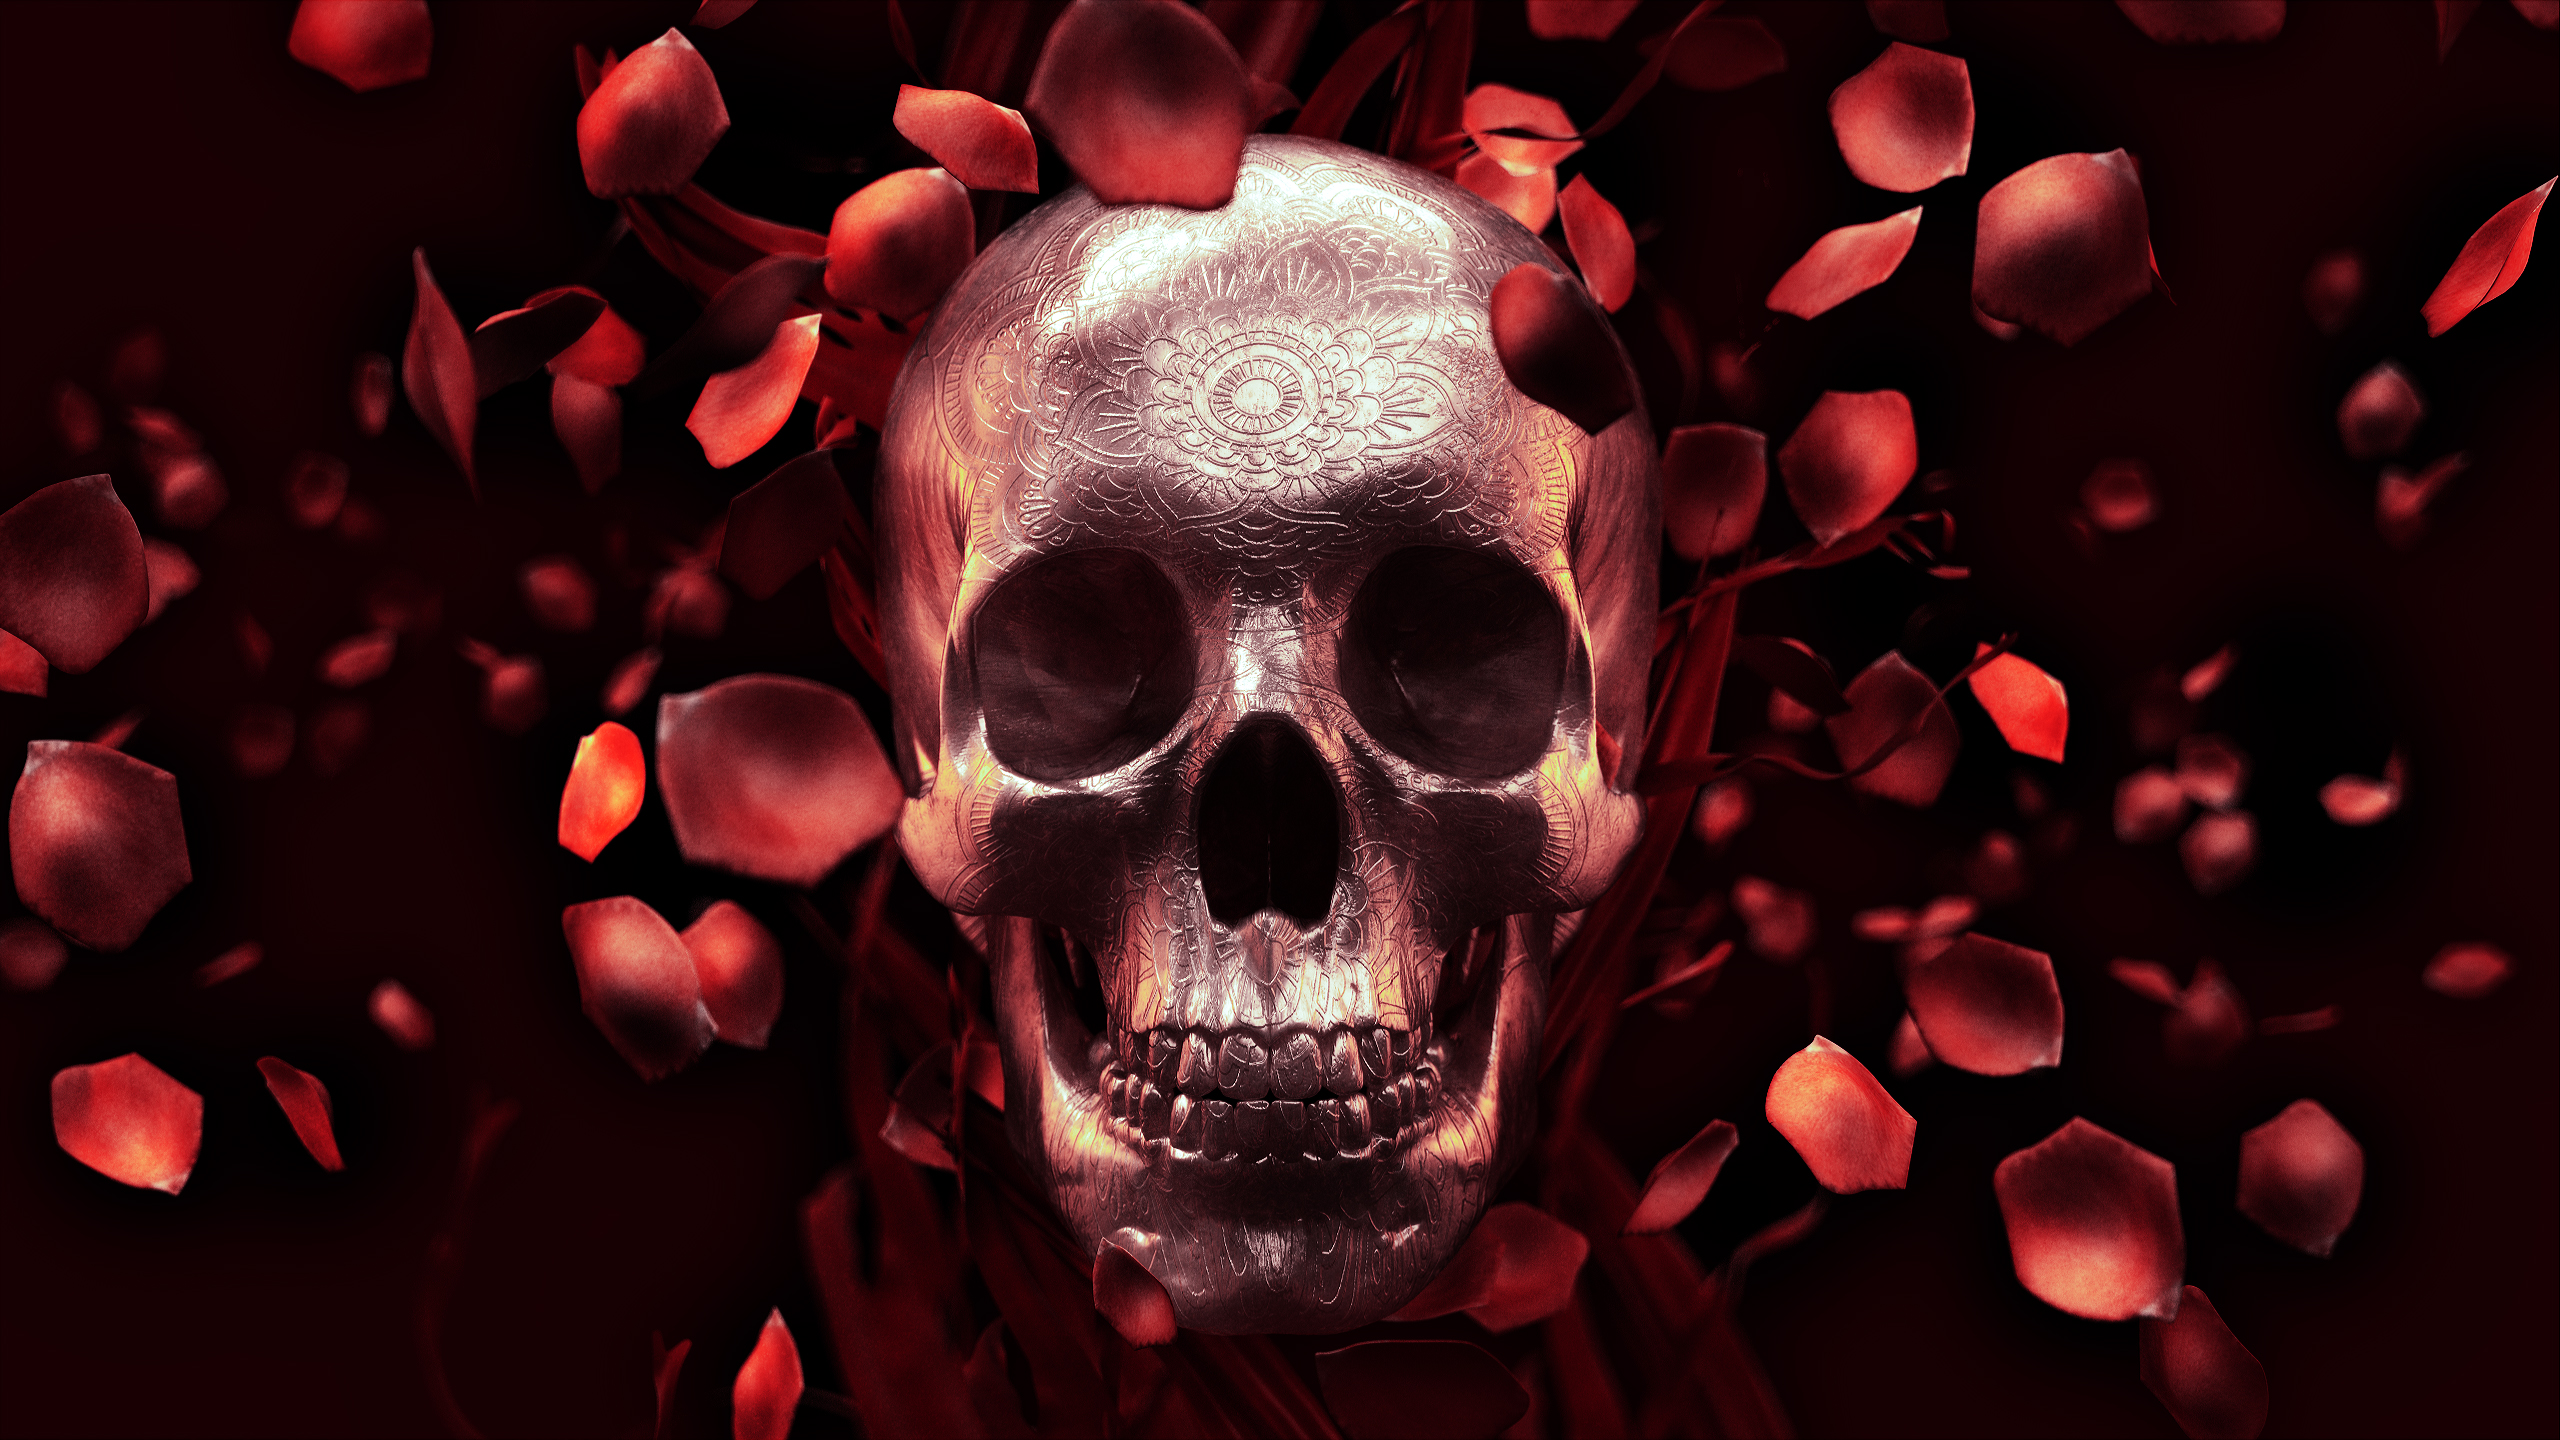 Must see Wallpaper High Resolution Skull - roses-skull-full-res  You Should Have_207843.jpg